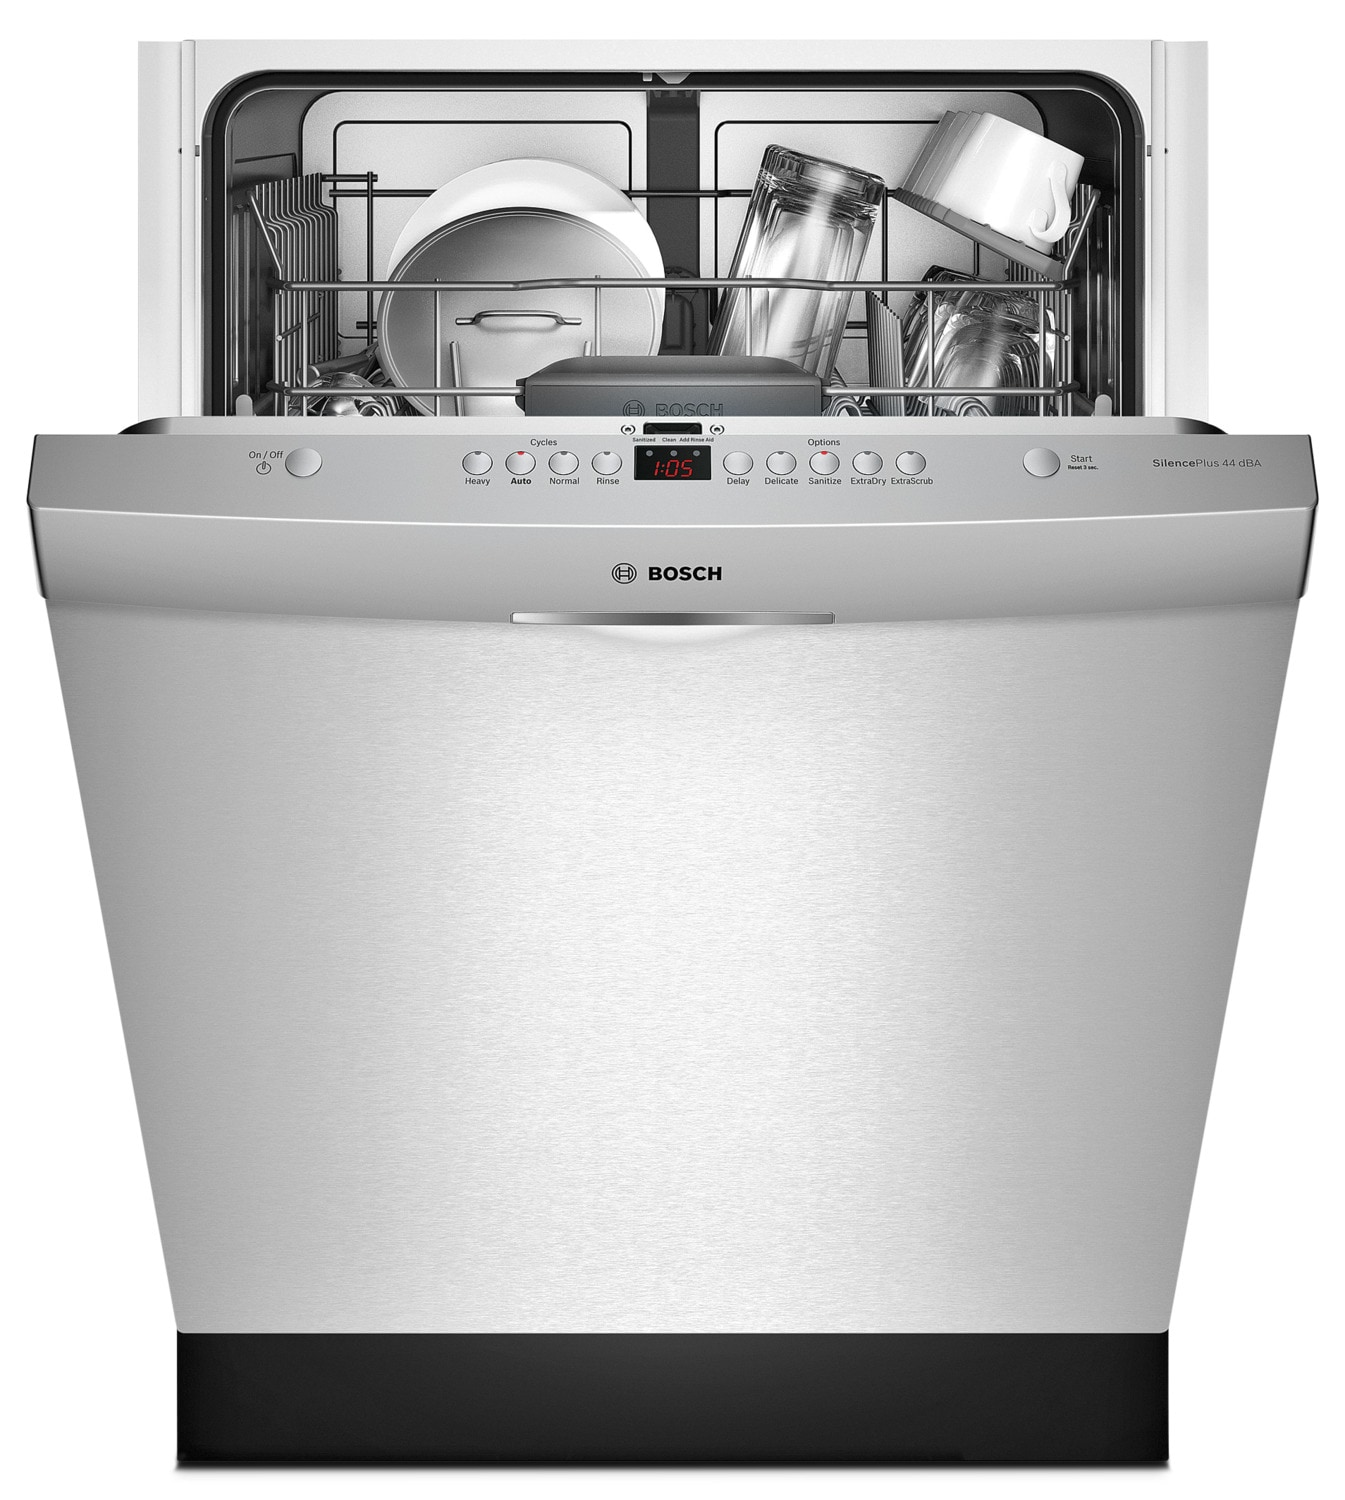 "Bosch Stainless Steel 24"" Dishwasher - SHS63VL5UC"